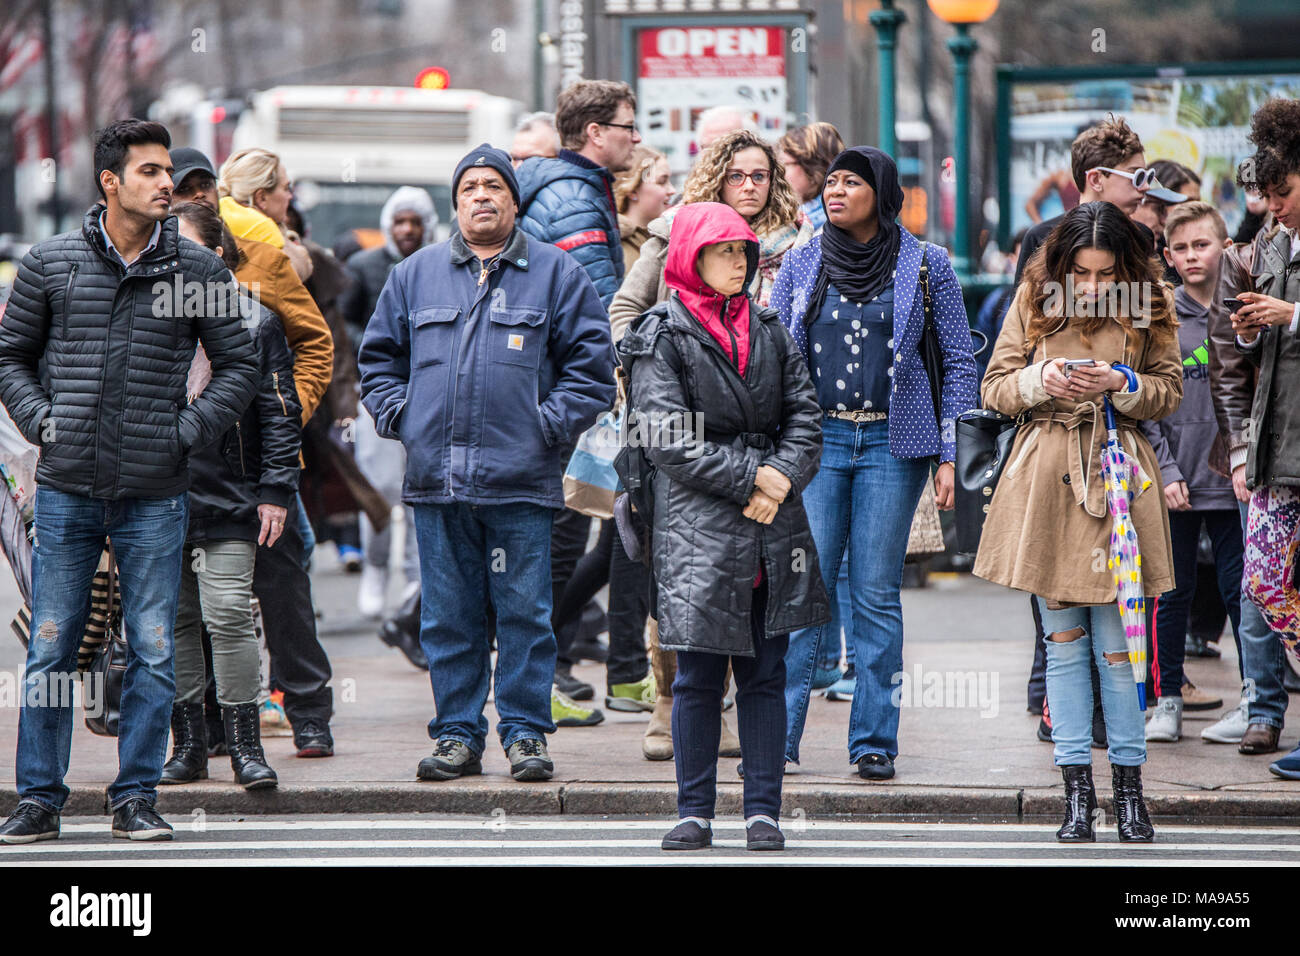 NEW YORK CITY - 29 MARS 2018 New York City : scène de rue piétonne de diversité des personnes qui traversent la rue à Midtown Manhattan sur 34th Str Photo Stock